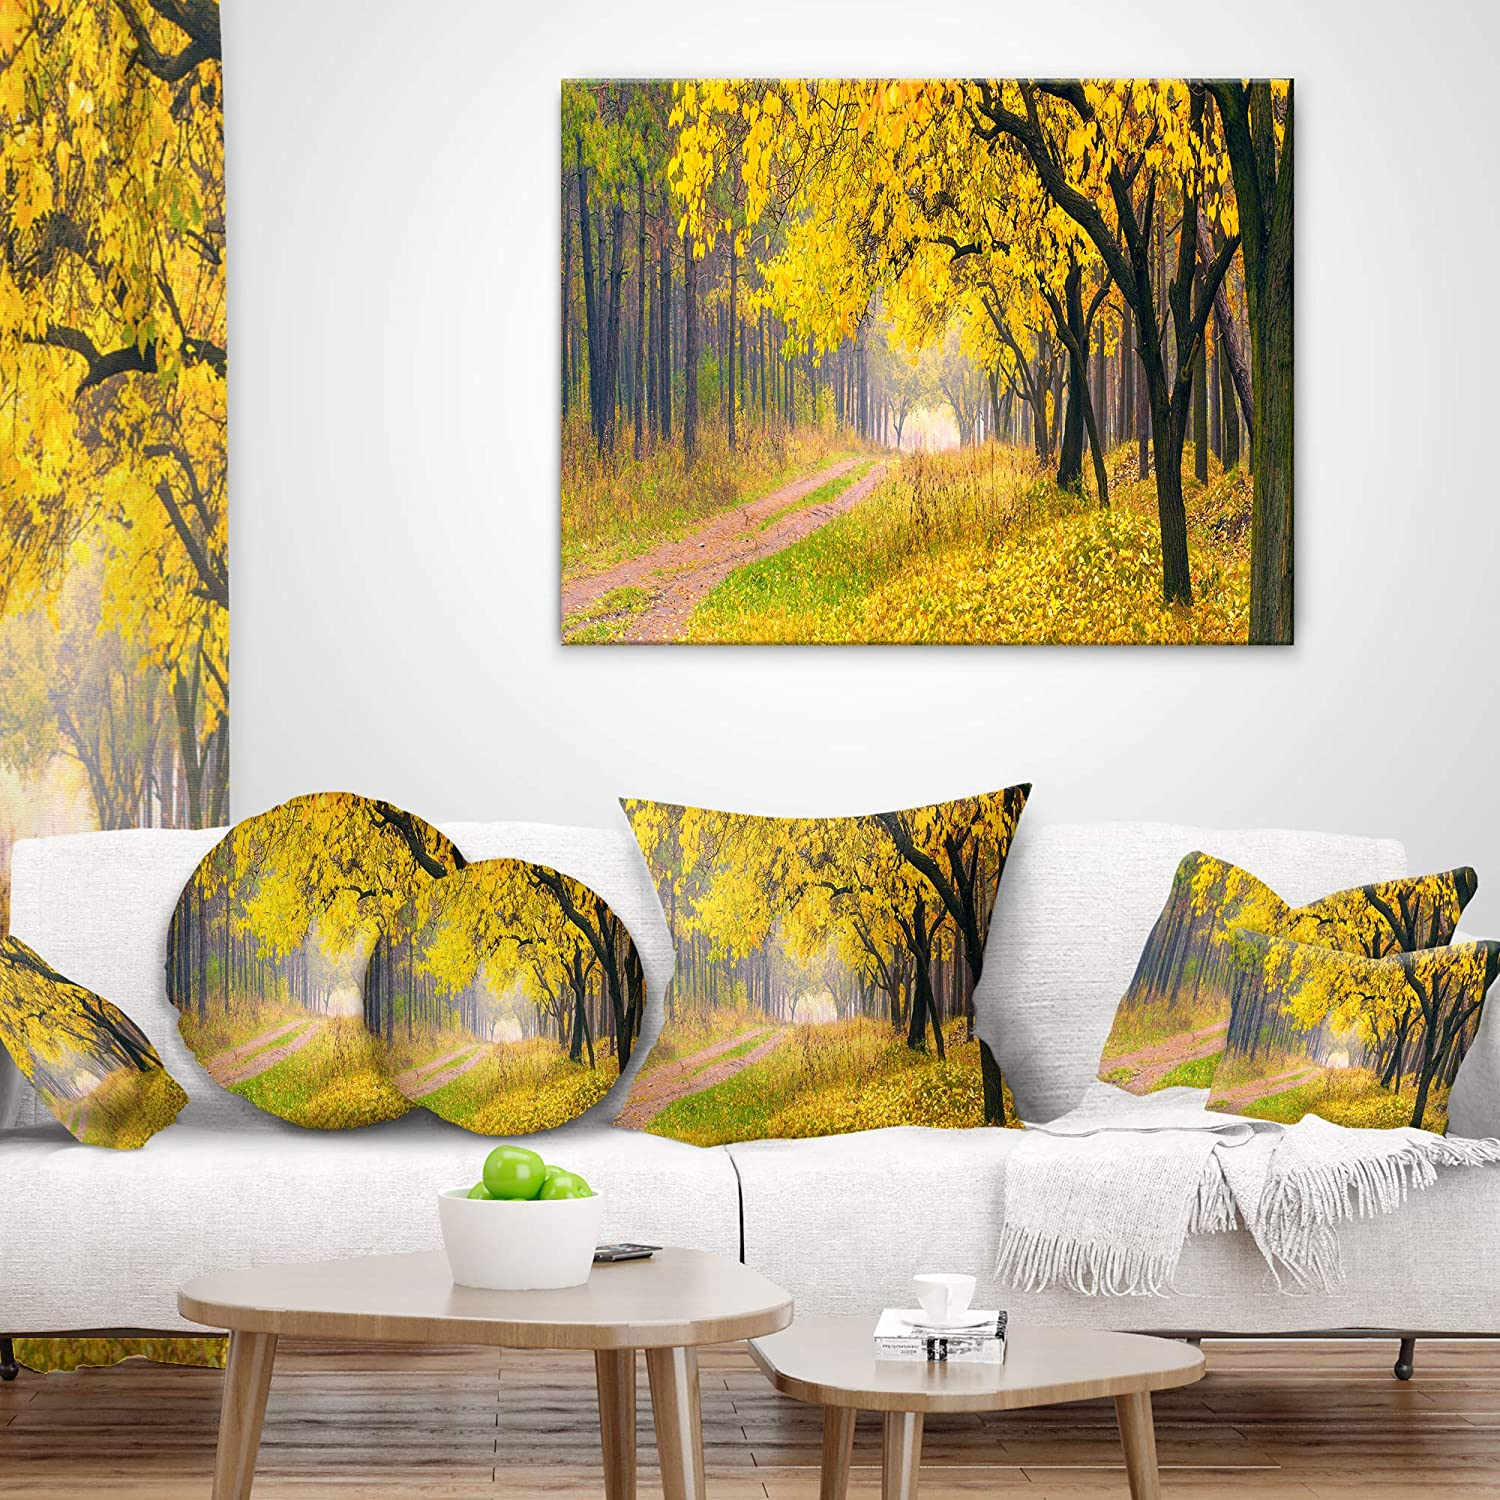 Sofa Throw Pillow 20 Designart CU9550-20-20-C Bright Yellow Autumn Forest Landscape Photo Round Cushion Cover for Living Room